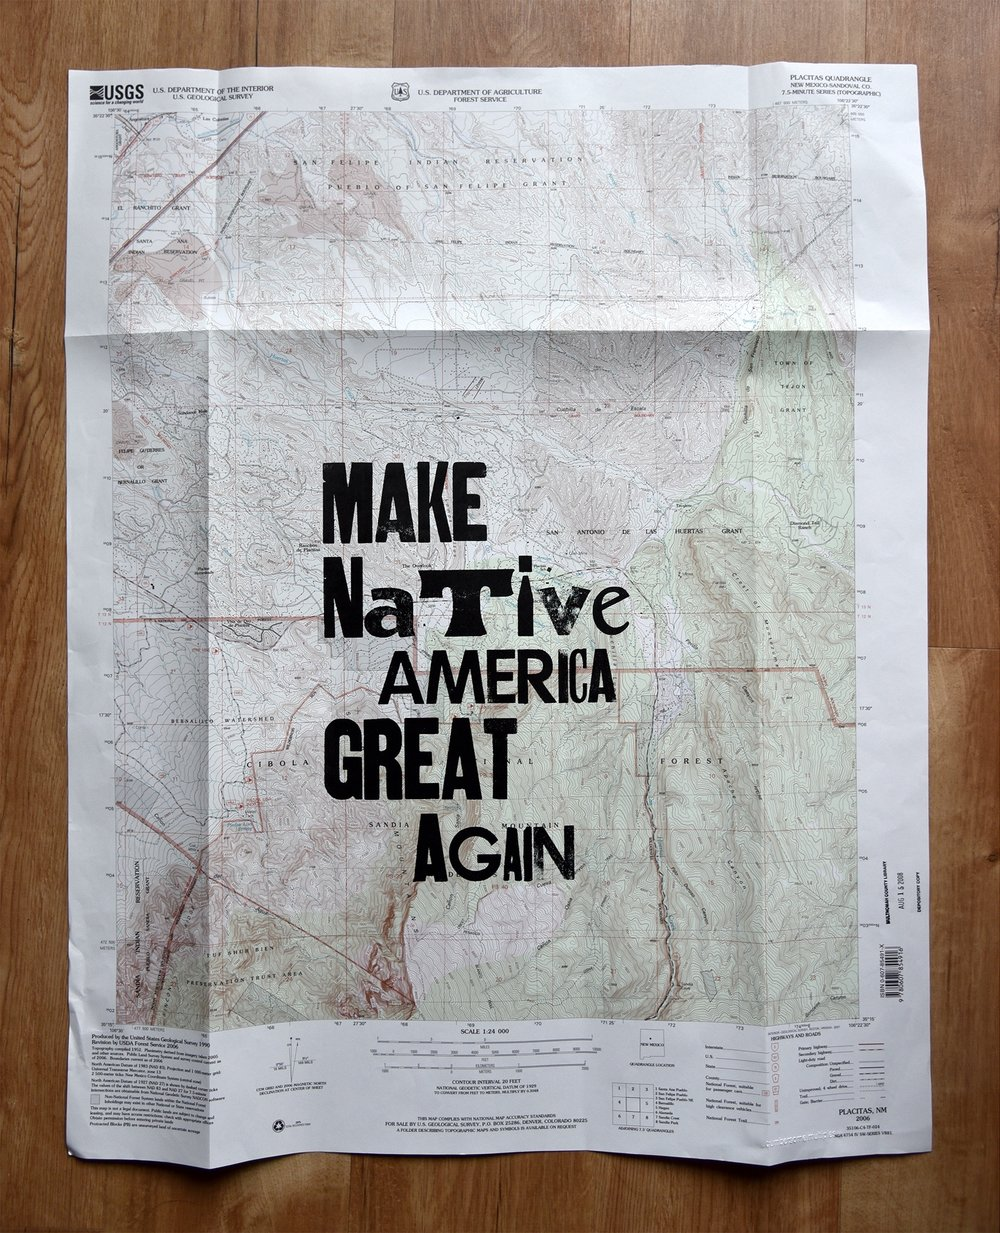 Collaborative print with Demian Diné Yazhi' @hetrogeneoushomosexual, wooden type and map of native land (isn't it all?), 2016